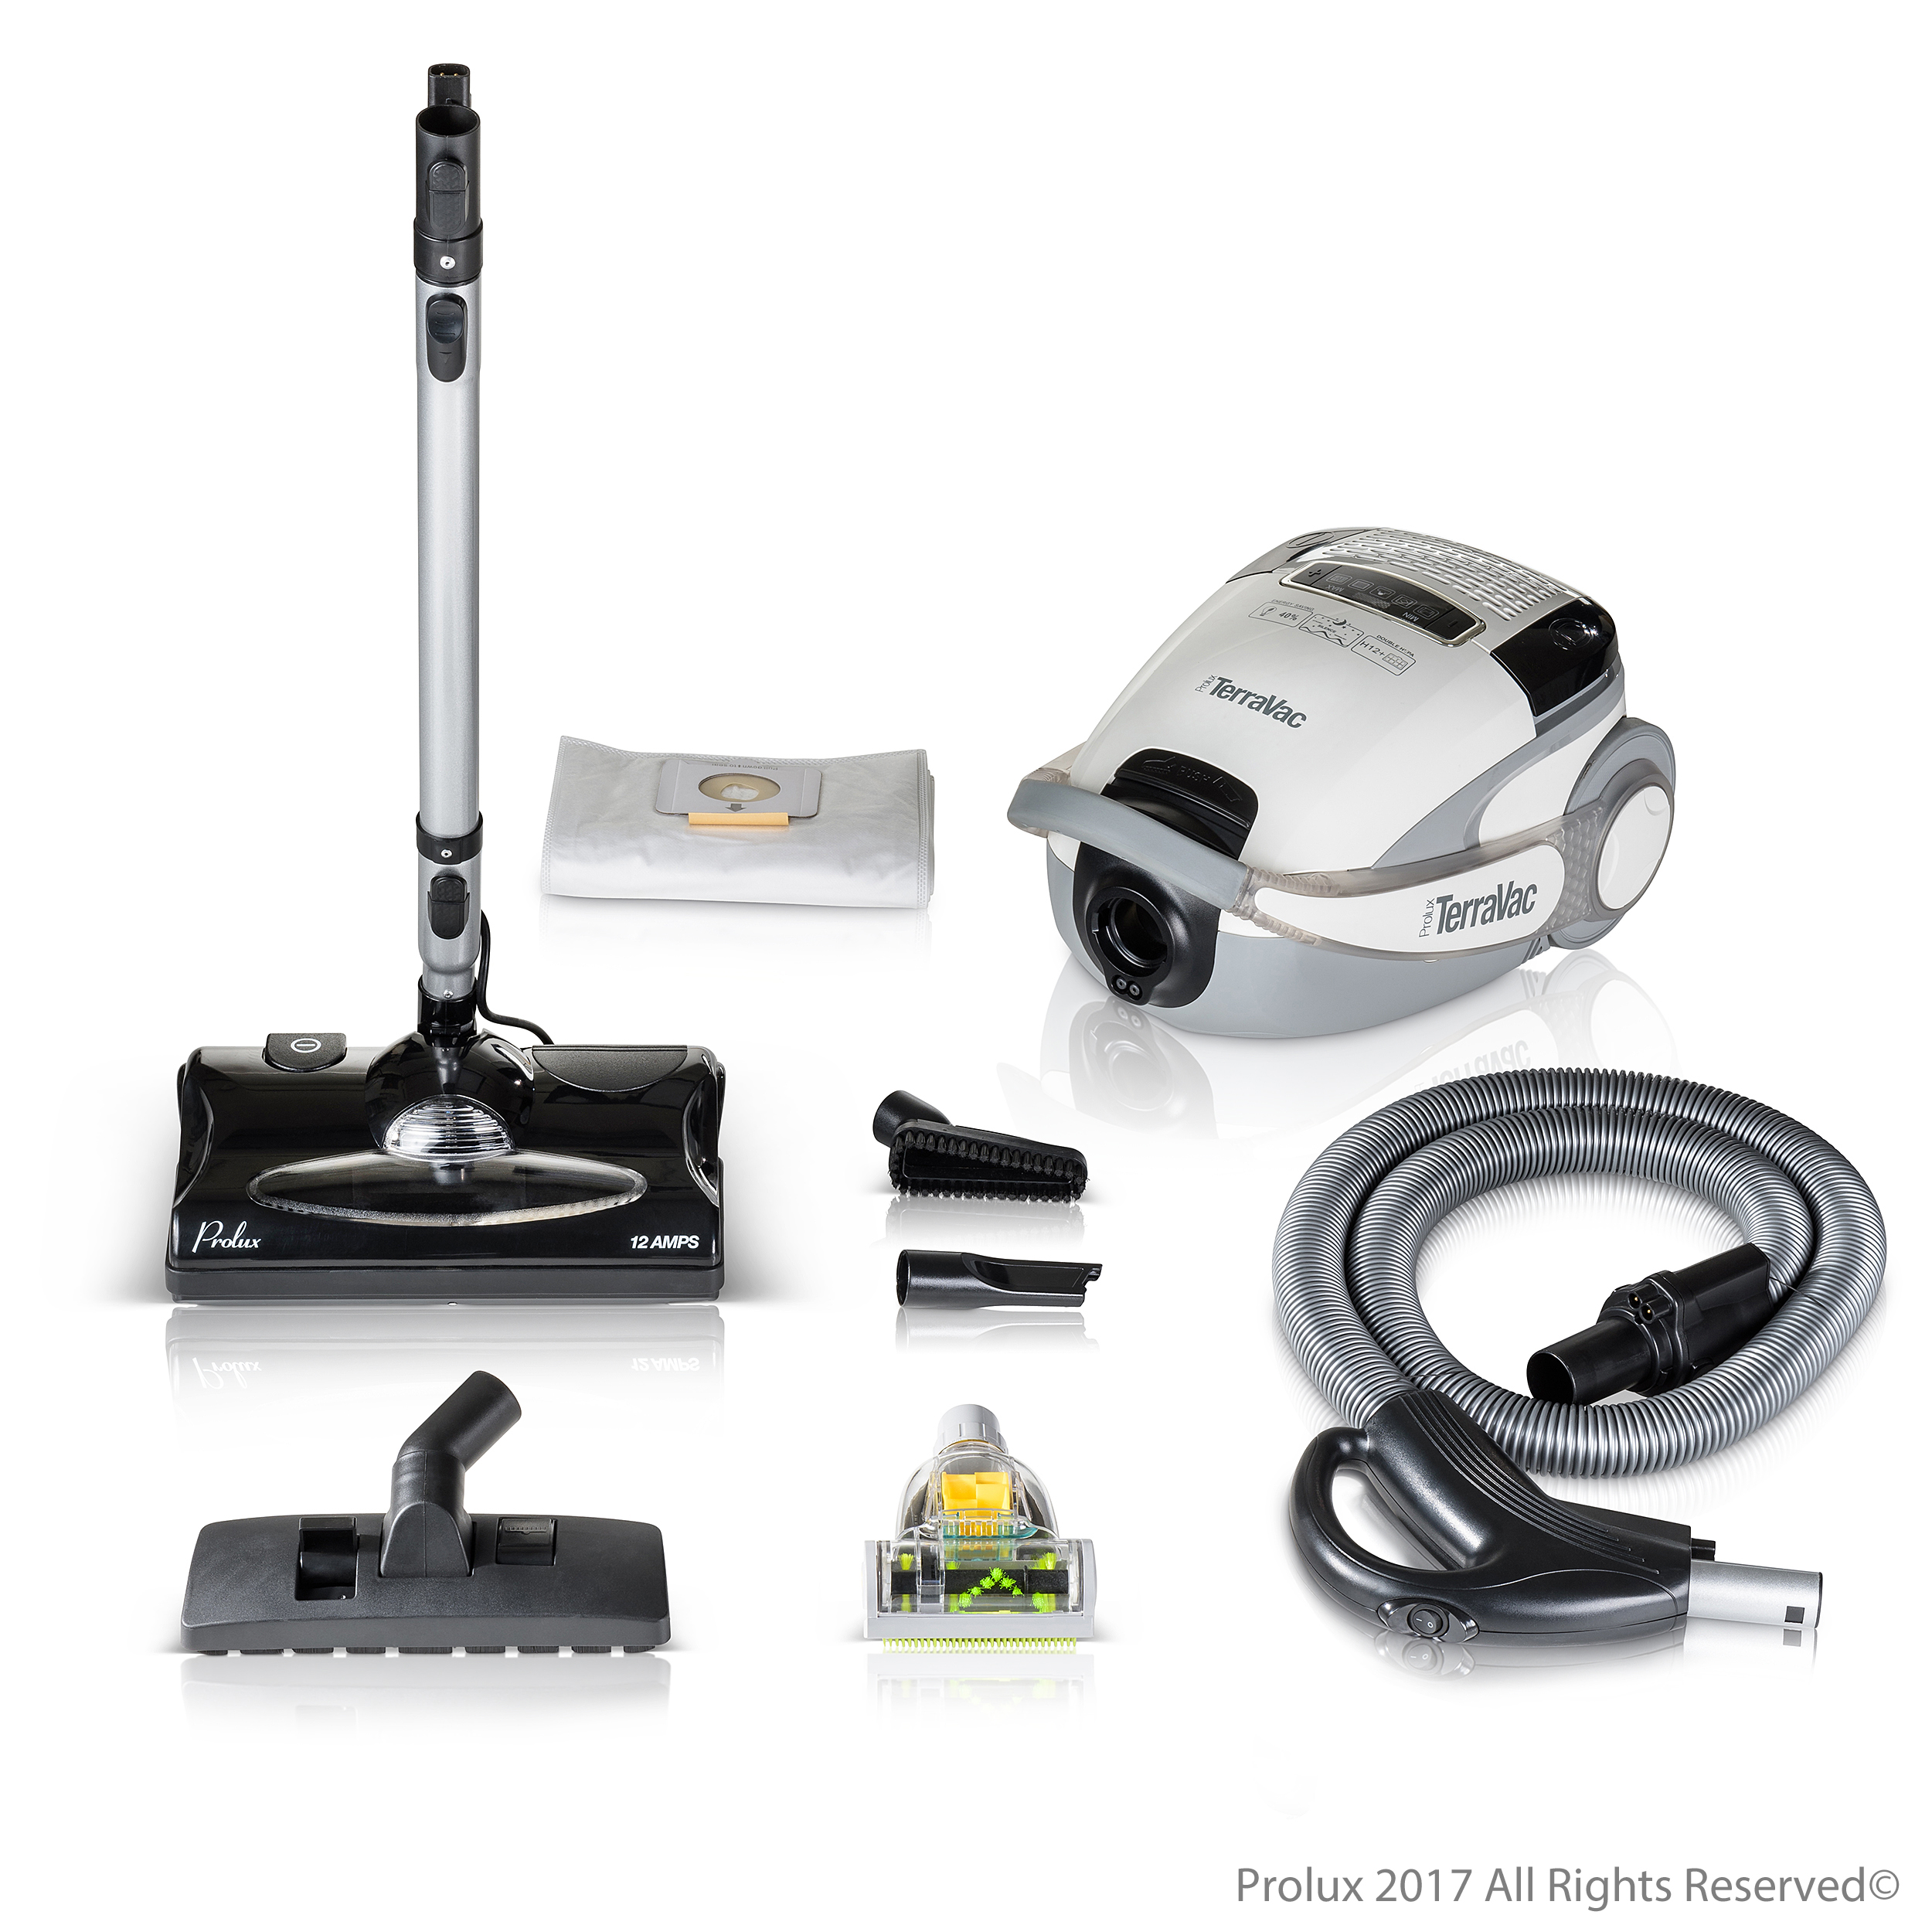 Prolux TerraVac 5 Speed Quiet Vacuum Cleaner with sealed HEPA Filter